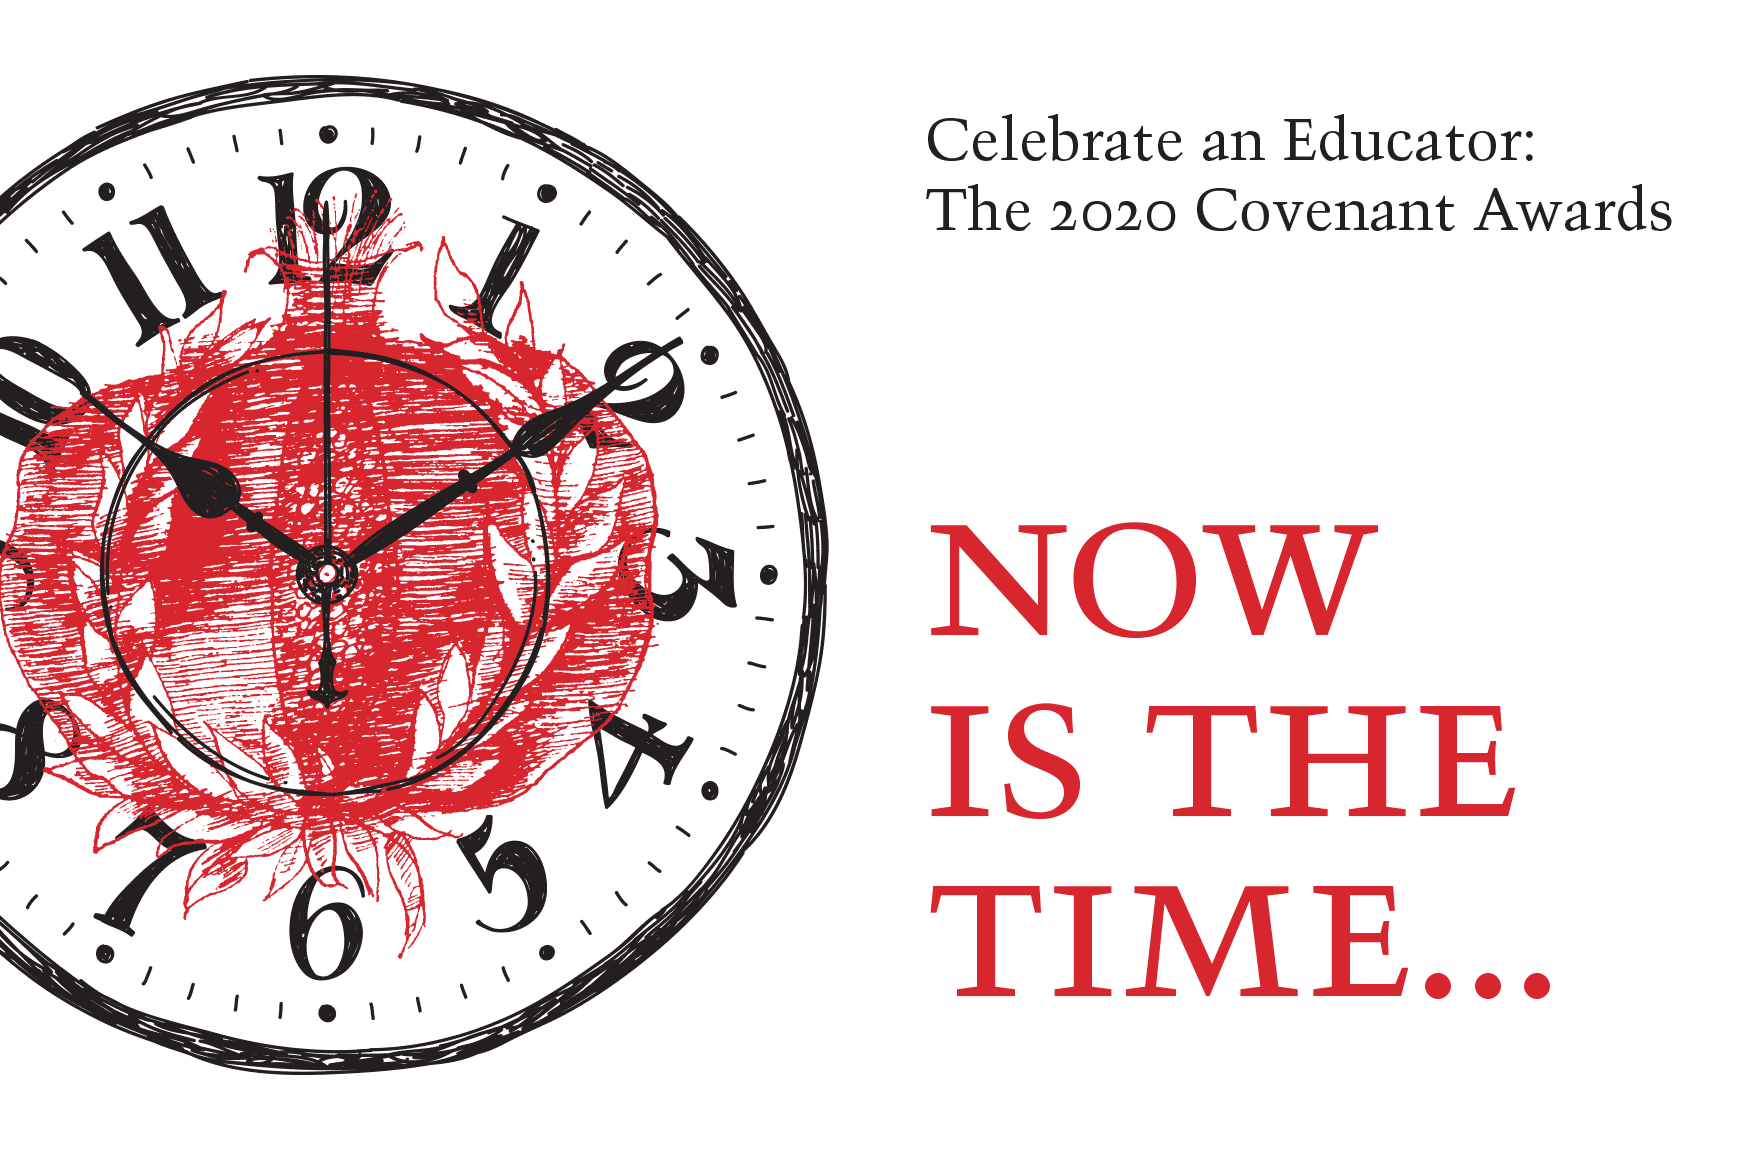 Now is the Time: The Nominations Process for the 2020 Covenant Awards is Open